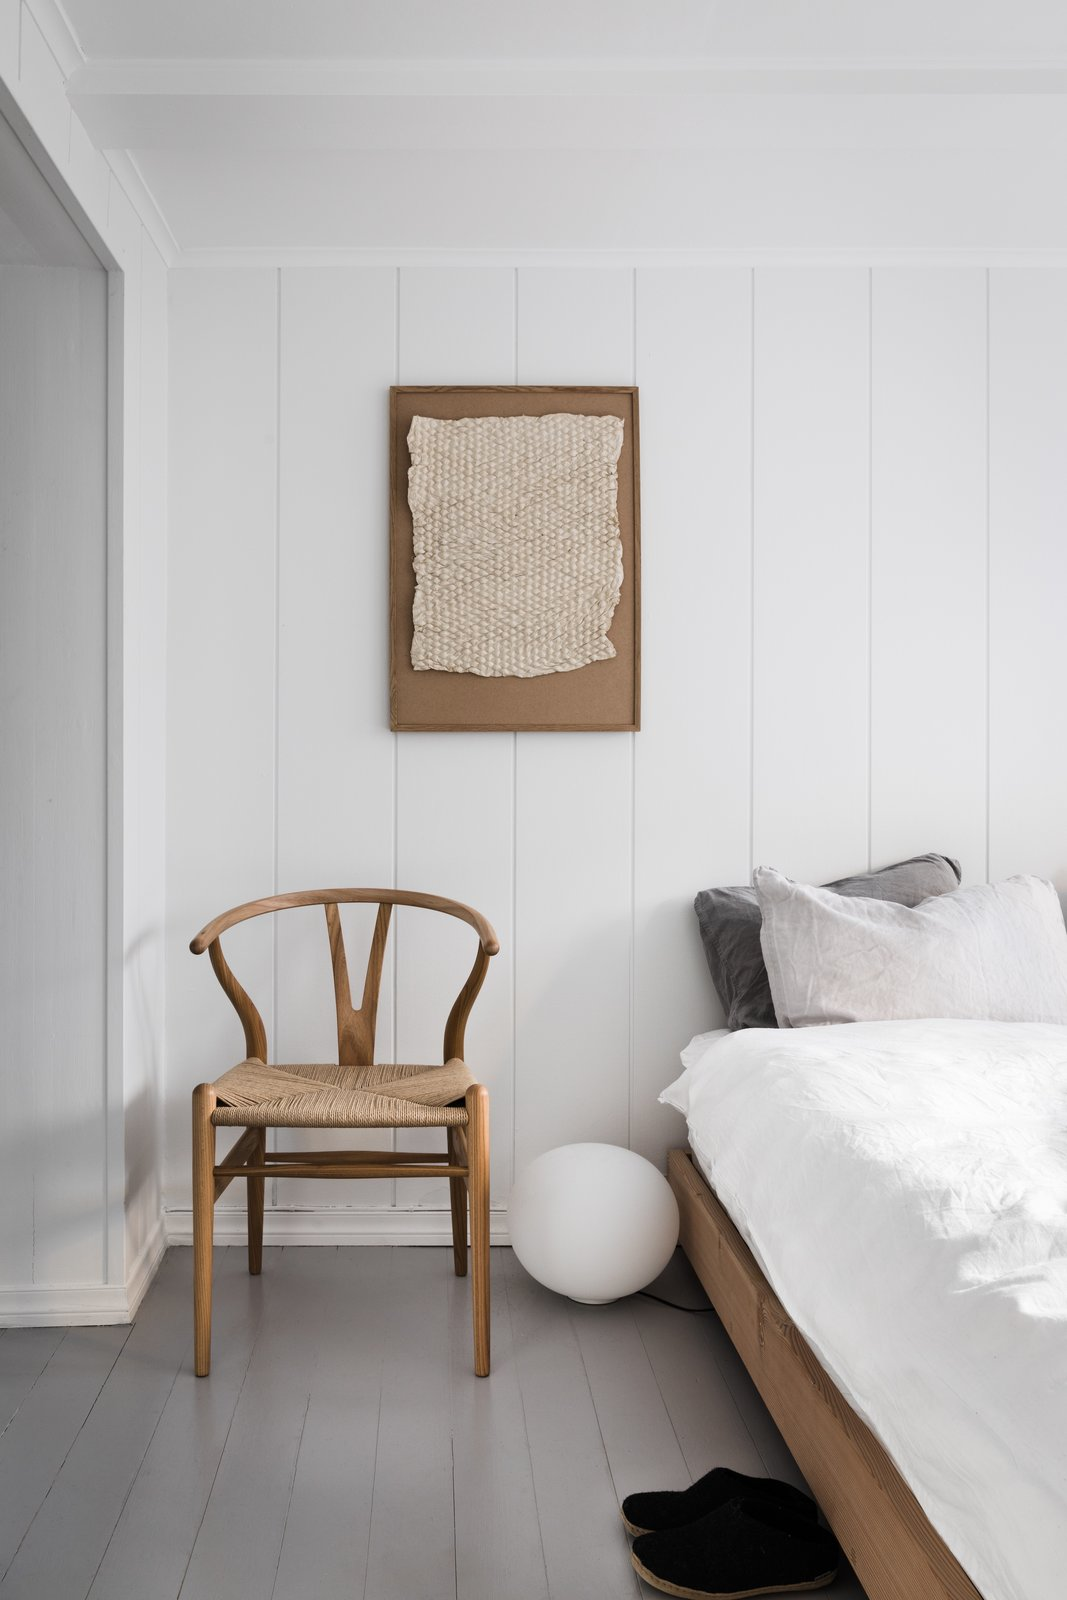 Bedroom, Bed, Floor Lighting, Chair, and Painted Wood Floor The remodeled townhouse, which was completed in 2016, has 750-square-foot of living space, including two bedrooms, and a bathroom, spread across three floors.  Photo 11 of 12 in An 18th-Century Townhouse Is Now a Chic Norwegian Rental